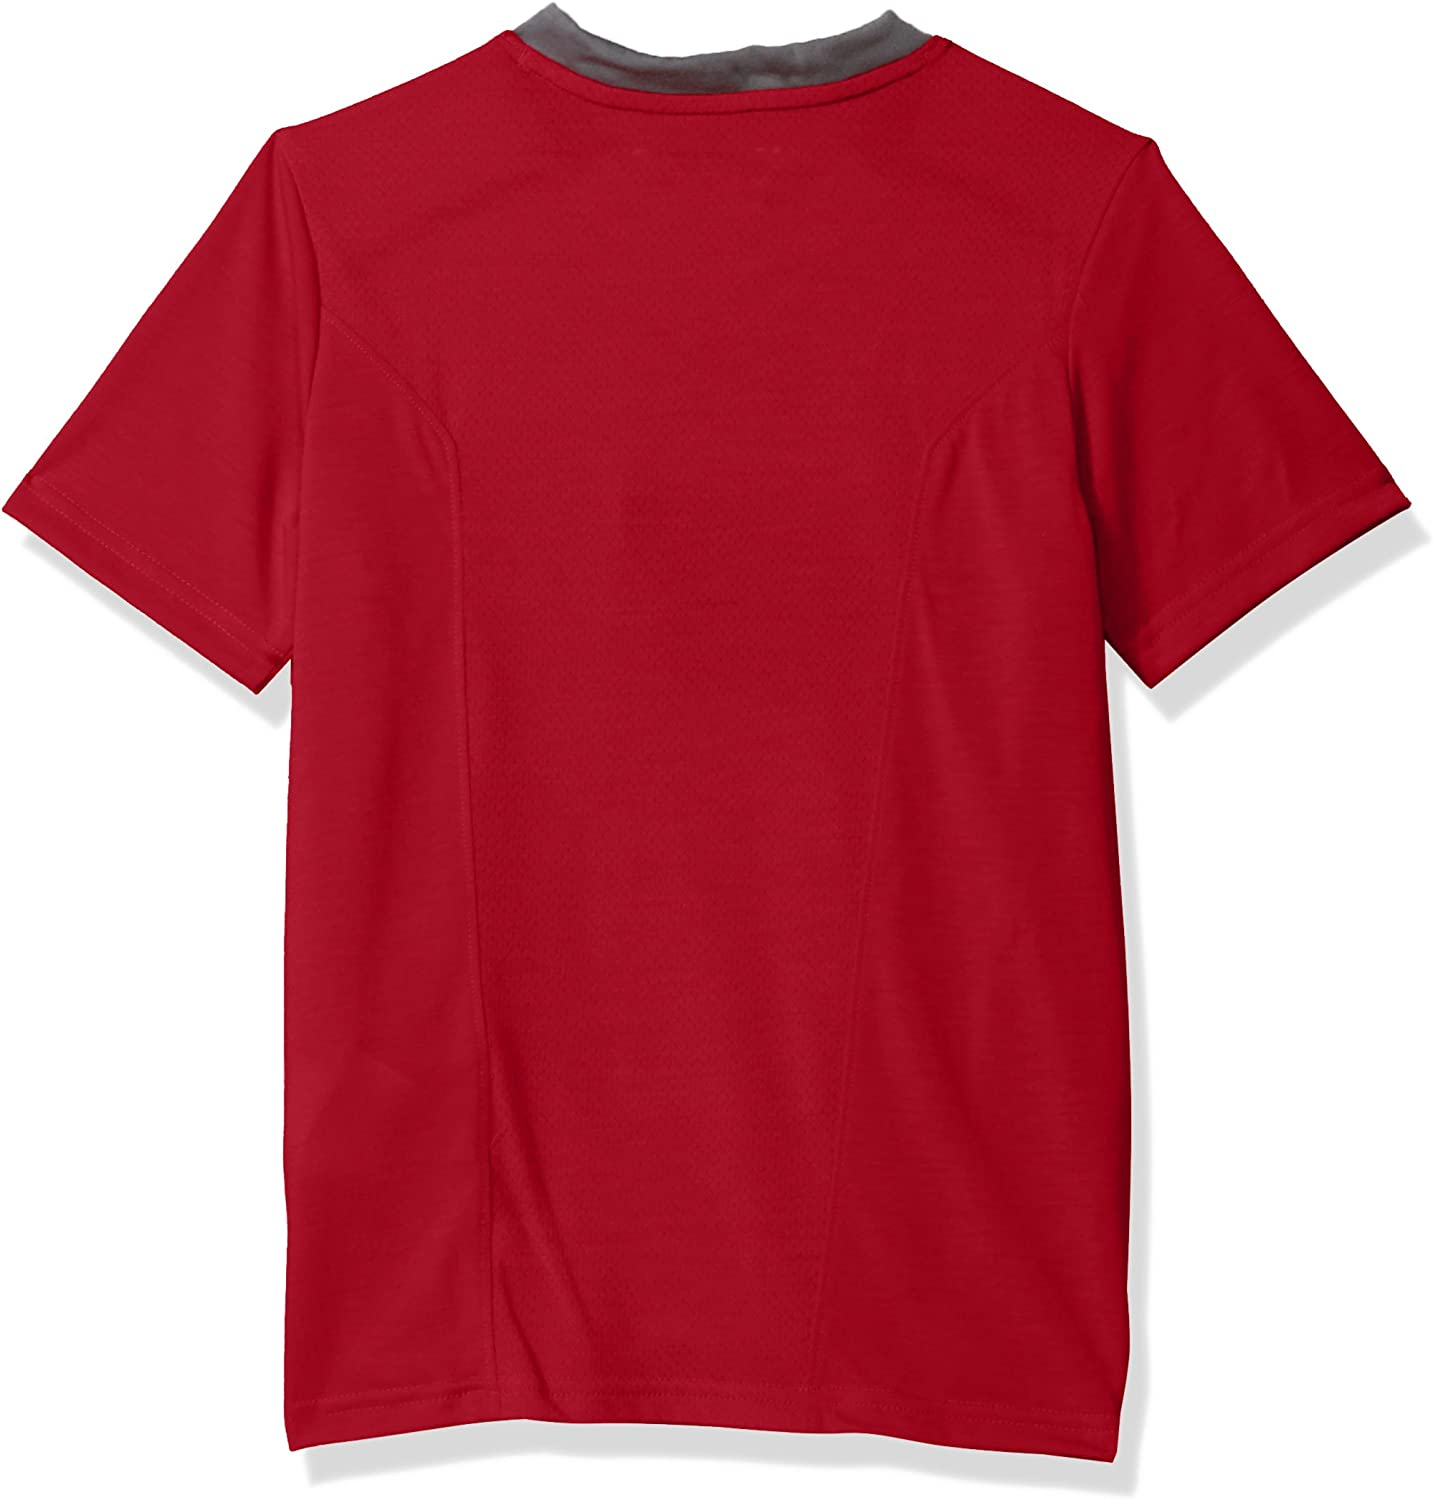 Under Armour NCAA Boys NCAA Boys Short Sleeve Performace Tee